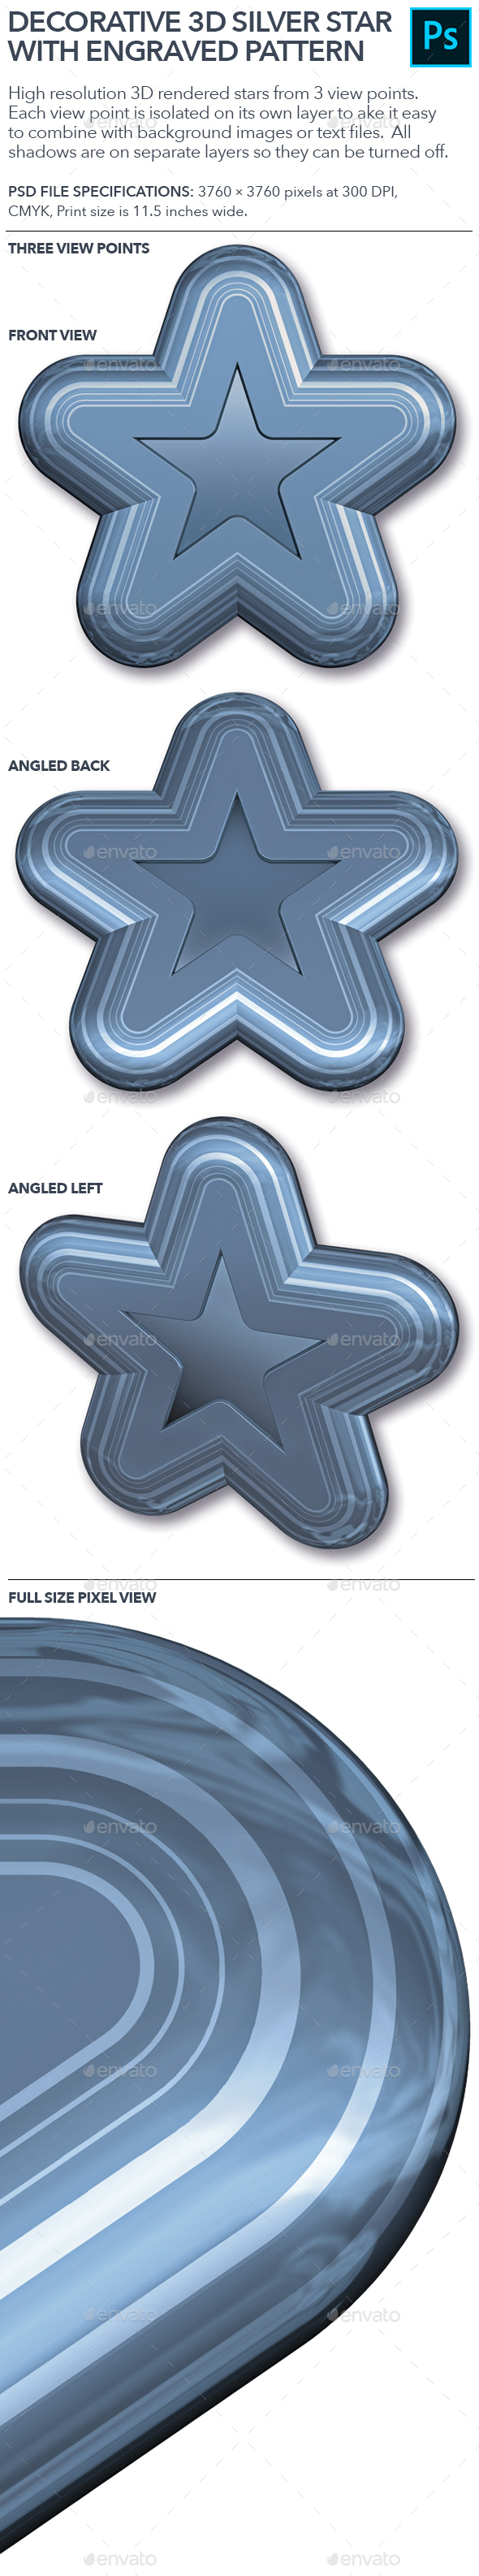 Decorative Silver Star.PSD